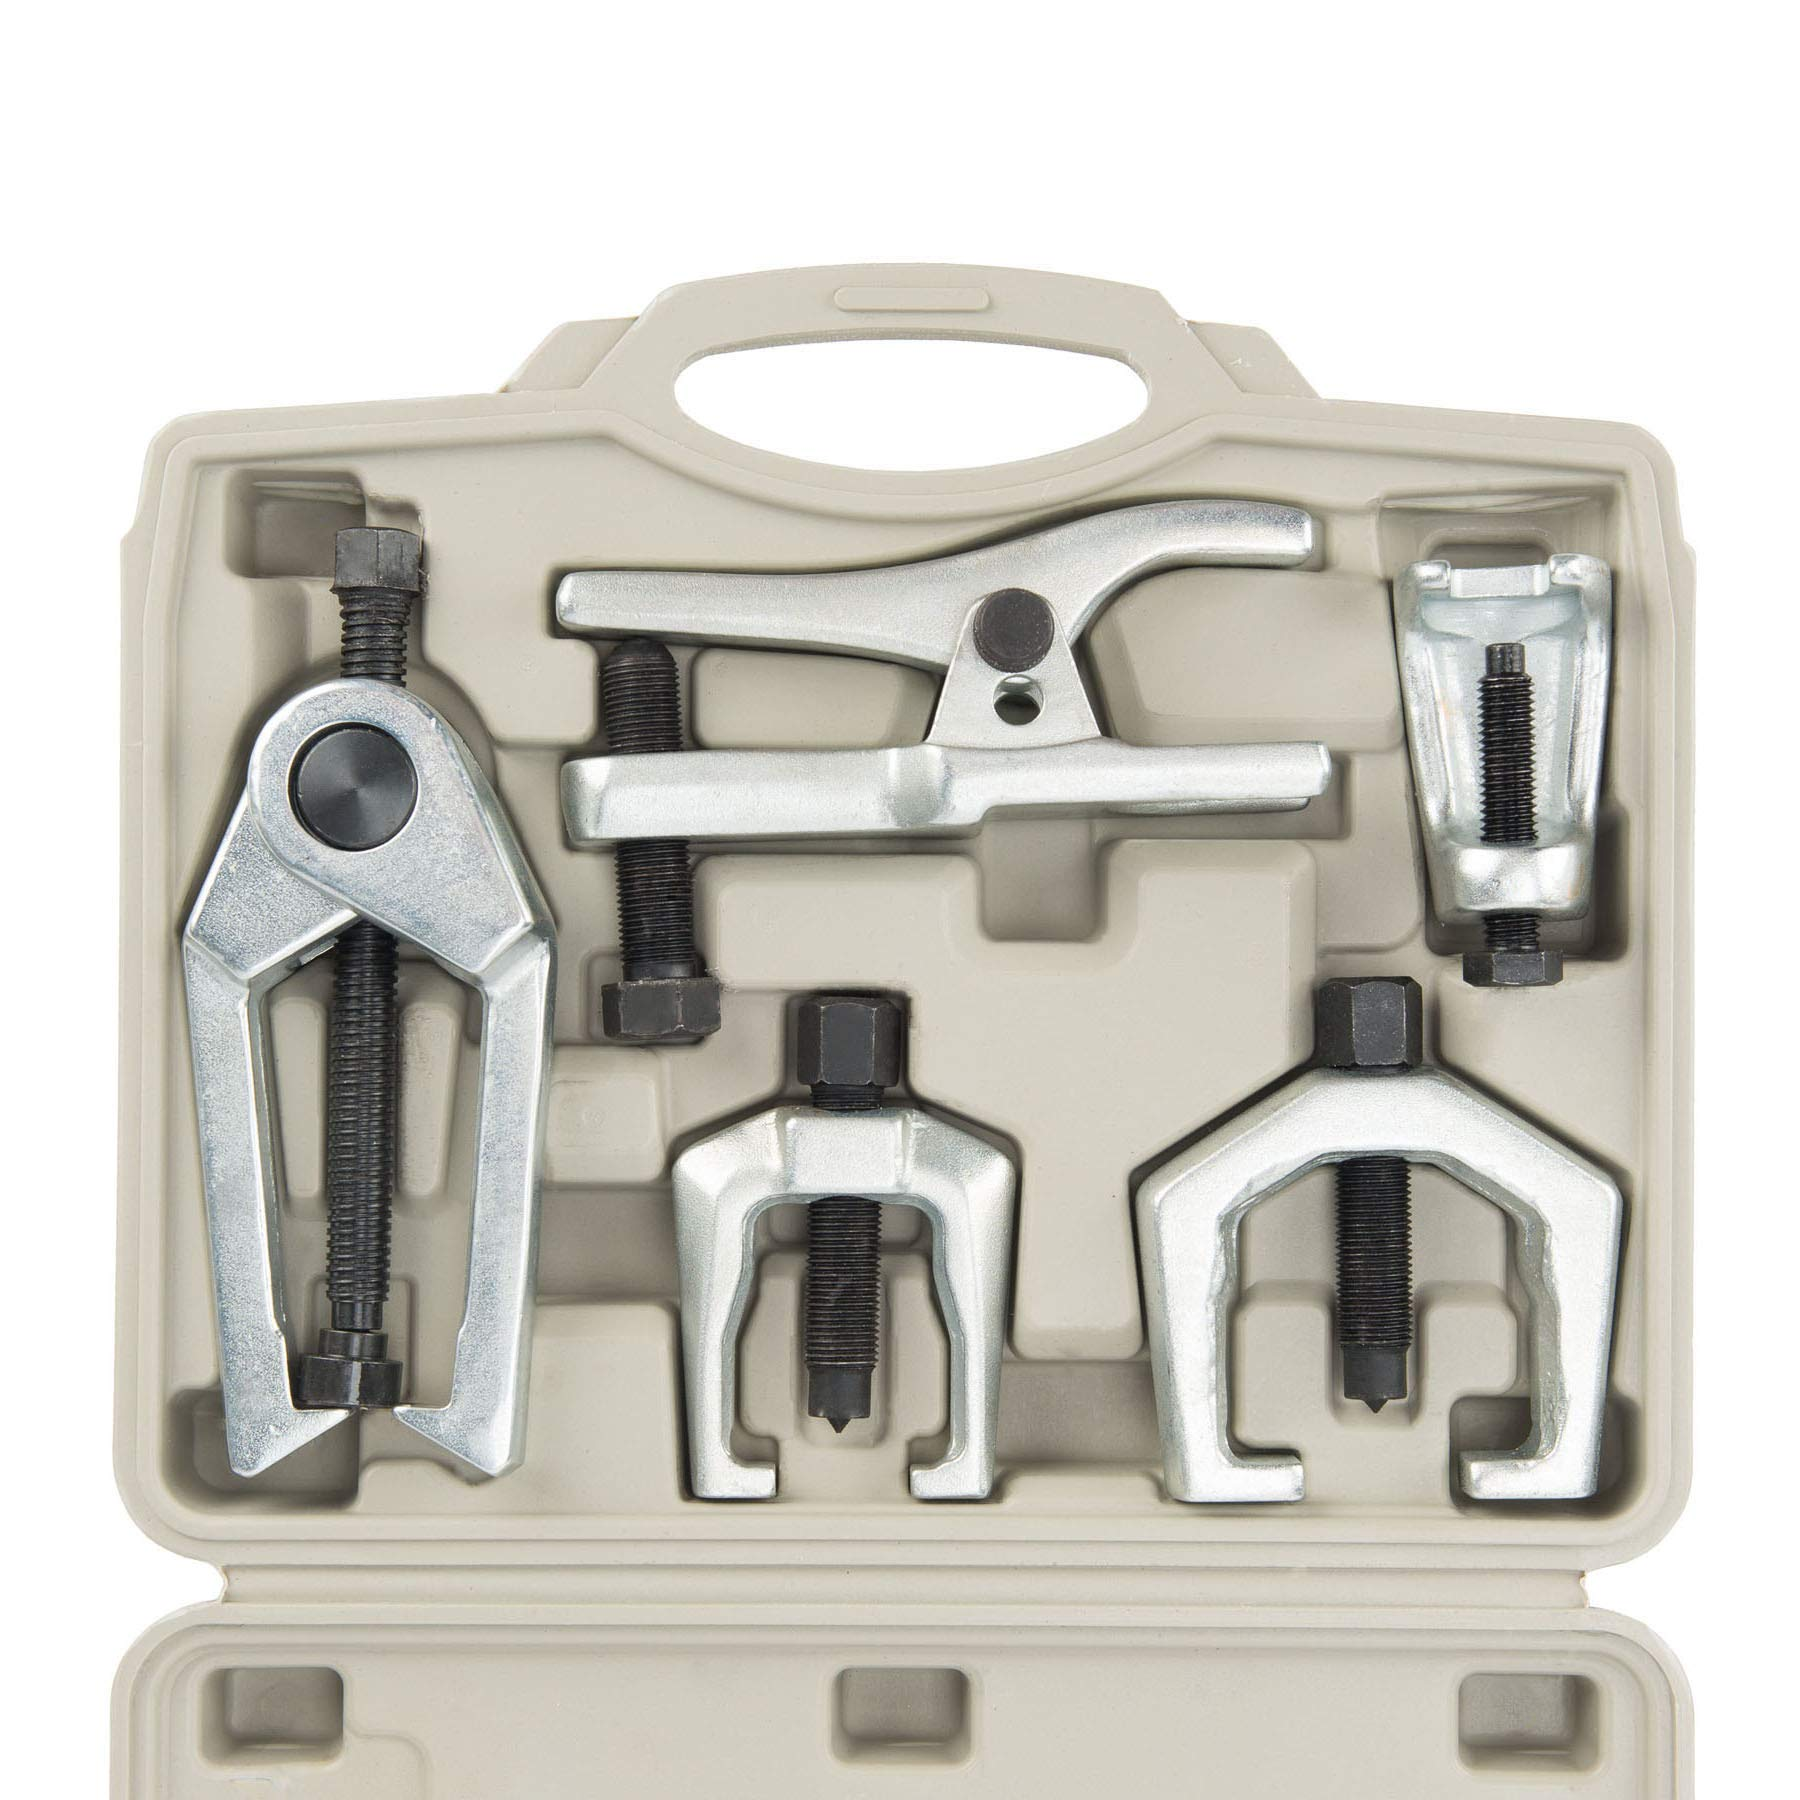 OrionMotorTech 5-in-1 Ball Joint Separator Tie Rod End Remover Pitman Arm Puller Service Splitter Removal Tool Kit